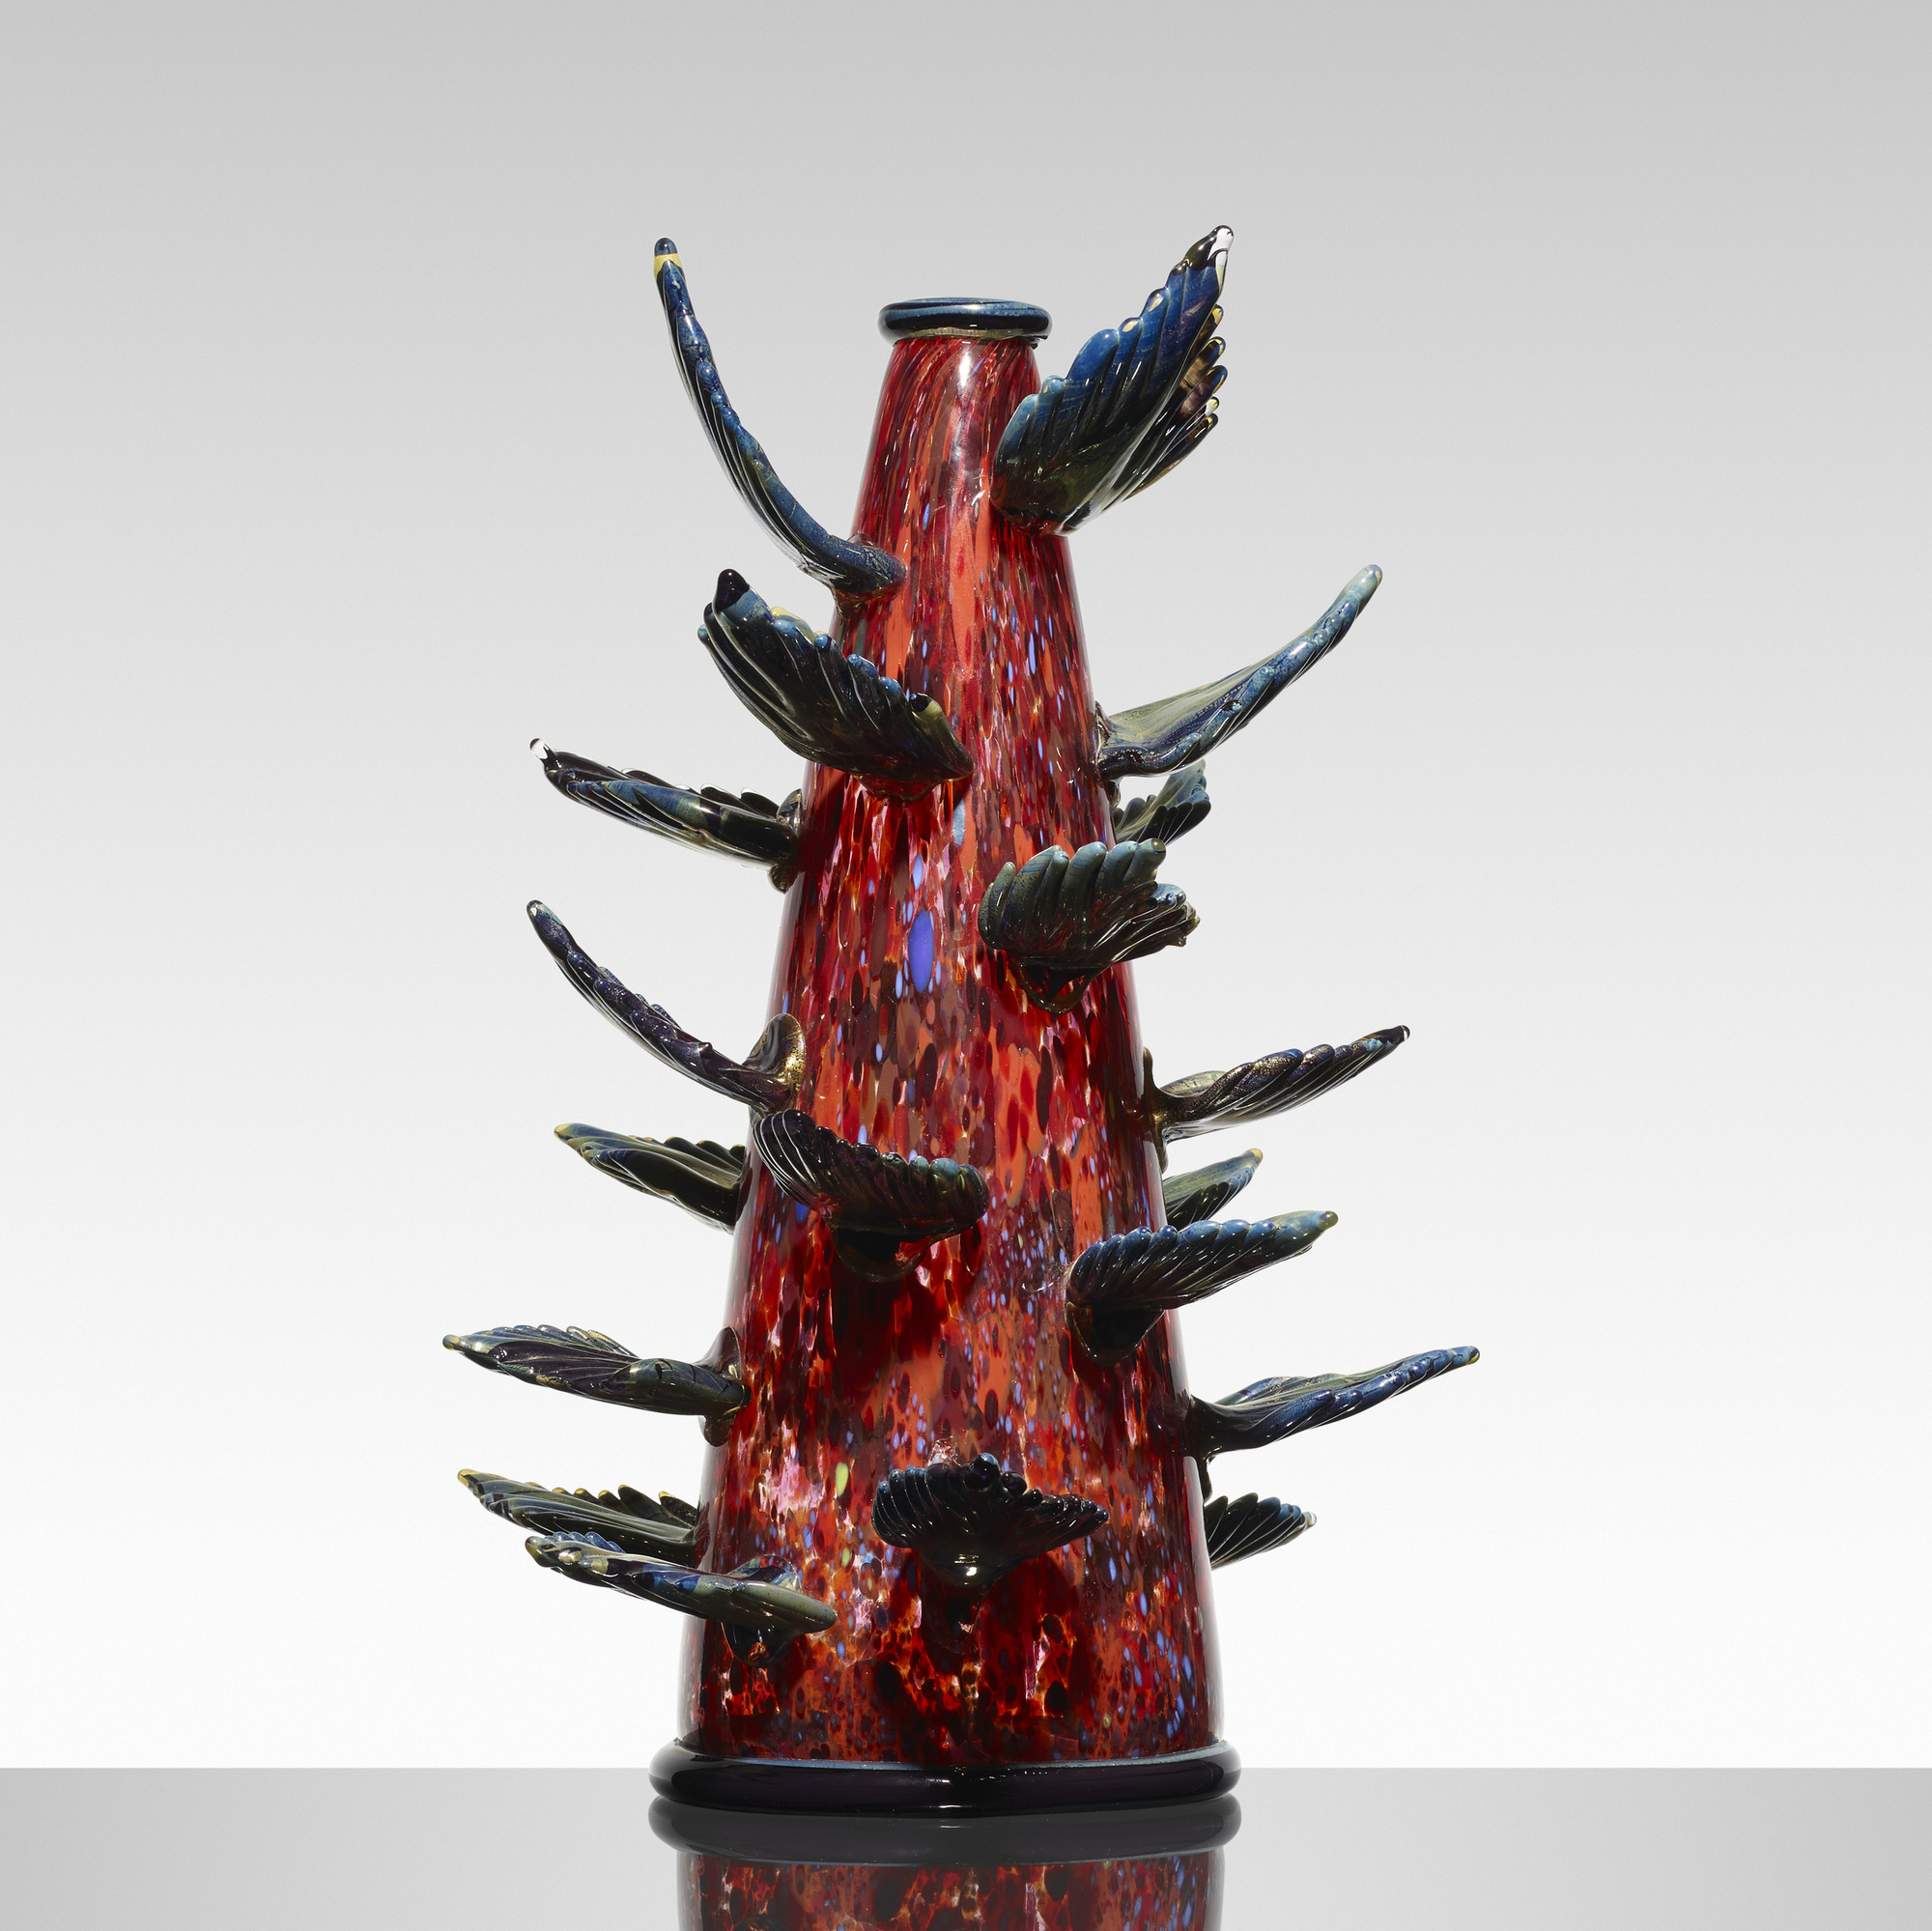 102: Dale Chihuly / Carmine Venetian with Prussian Blue Leaves (1 of 2)